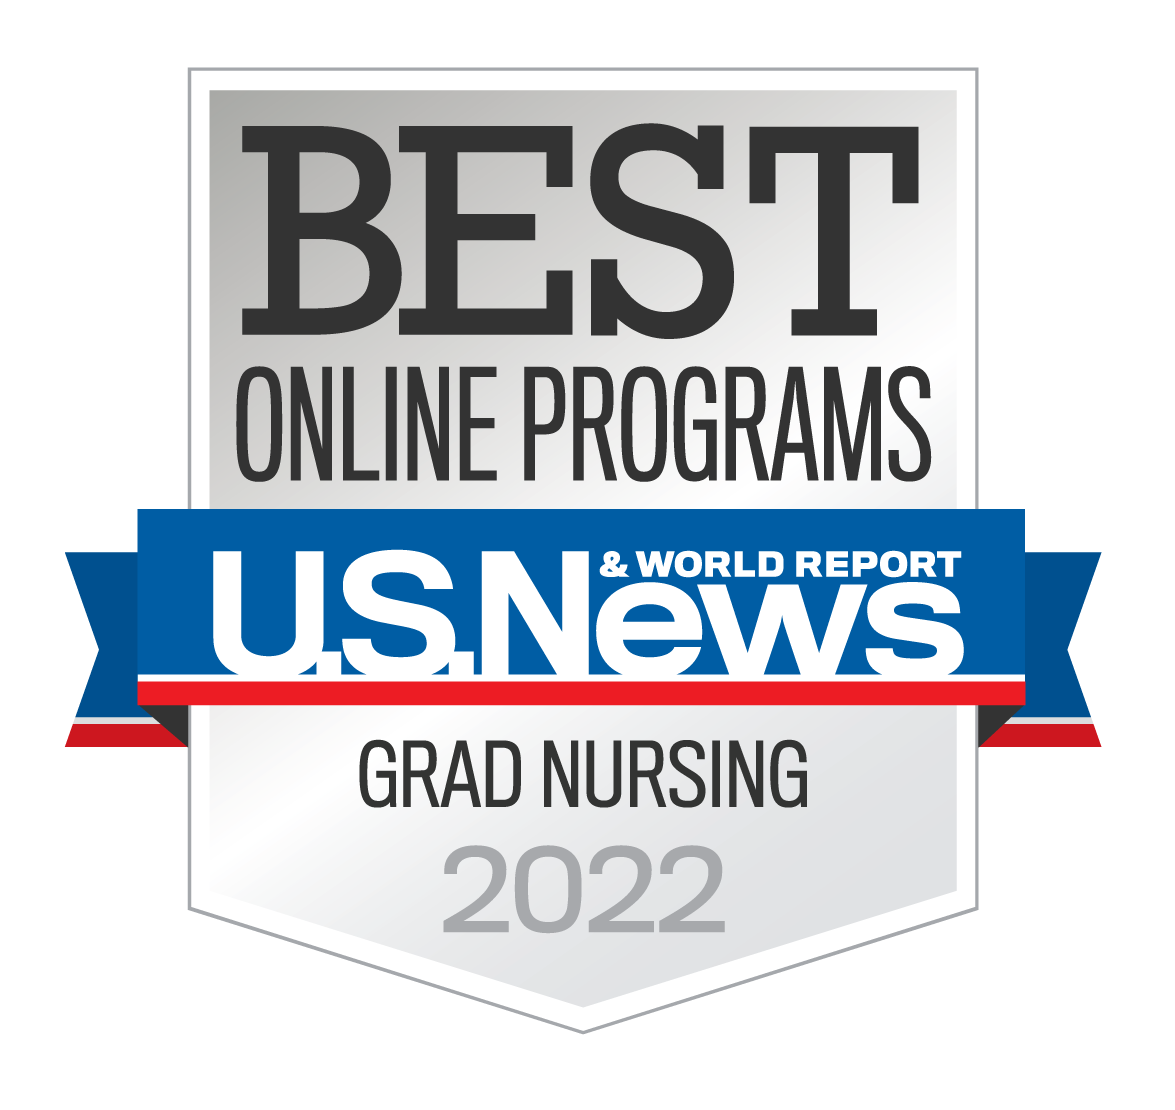 badge-onlineprograms-gradnursing-2020.png